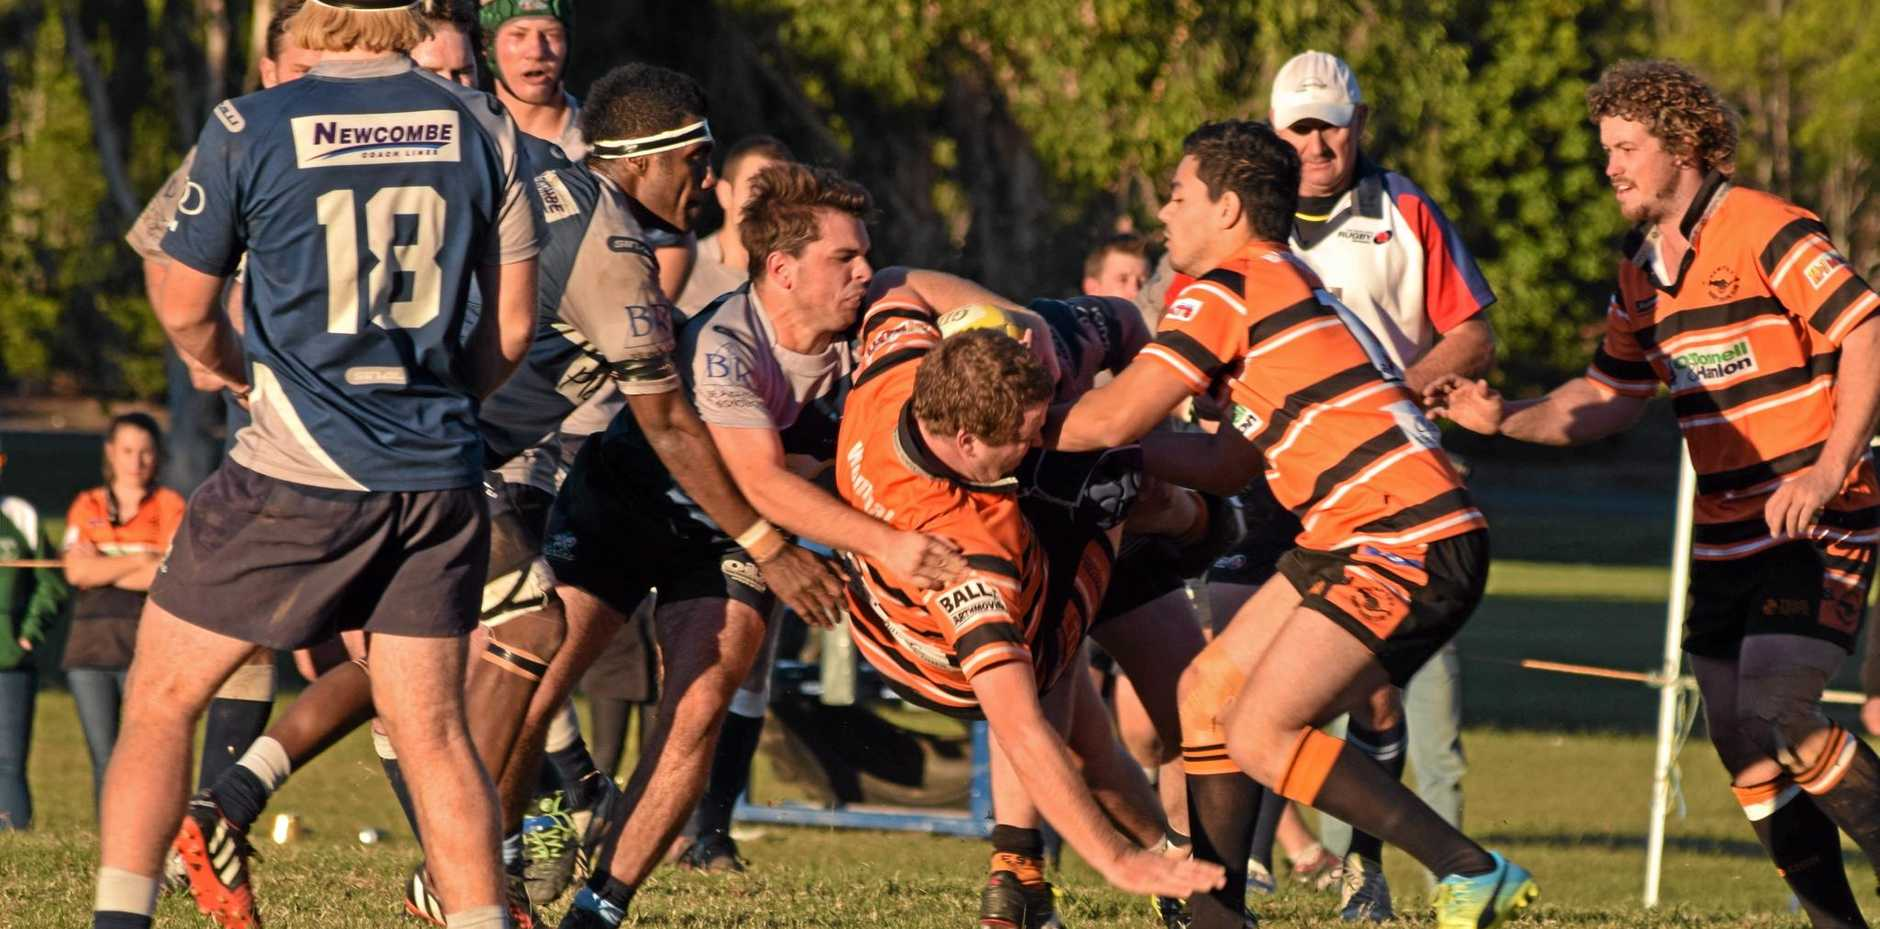 DO OR DIE: The SCU marlins travel to Crescent Head on Sunday to face Kempsey in the MNC Rugby minor semi final.